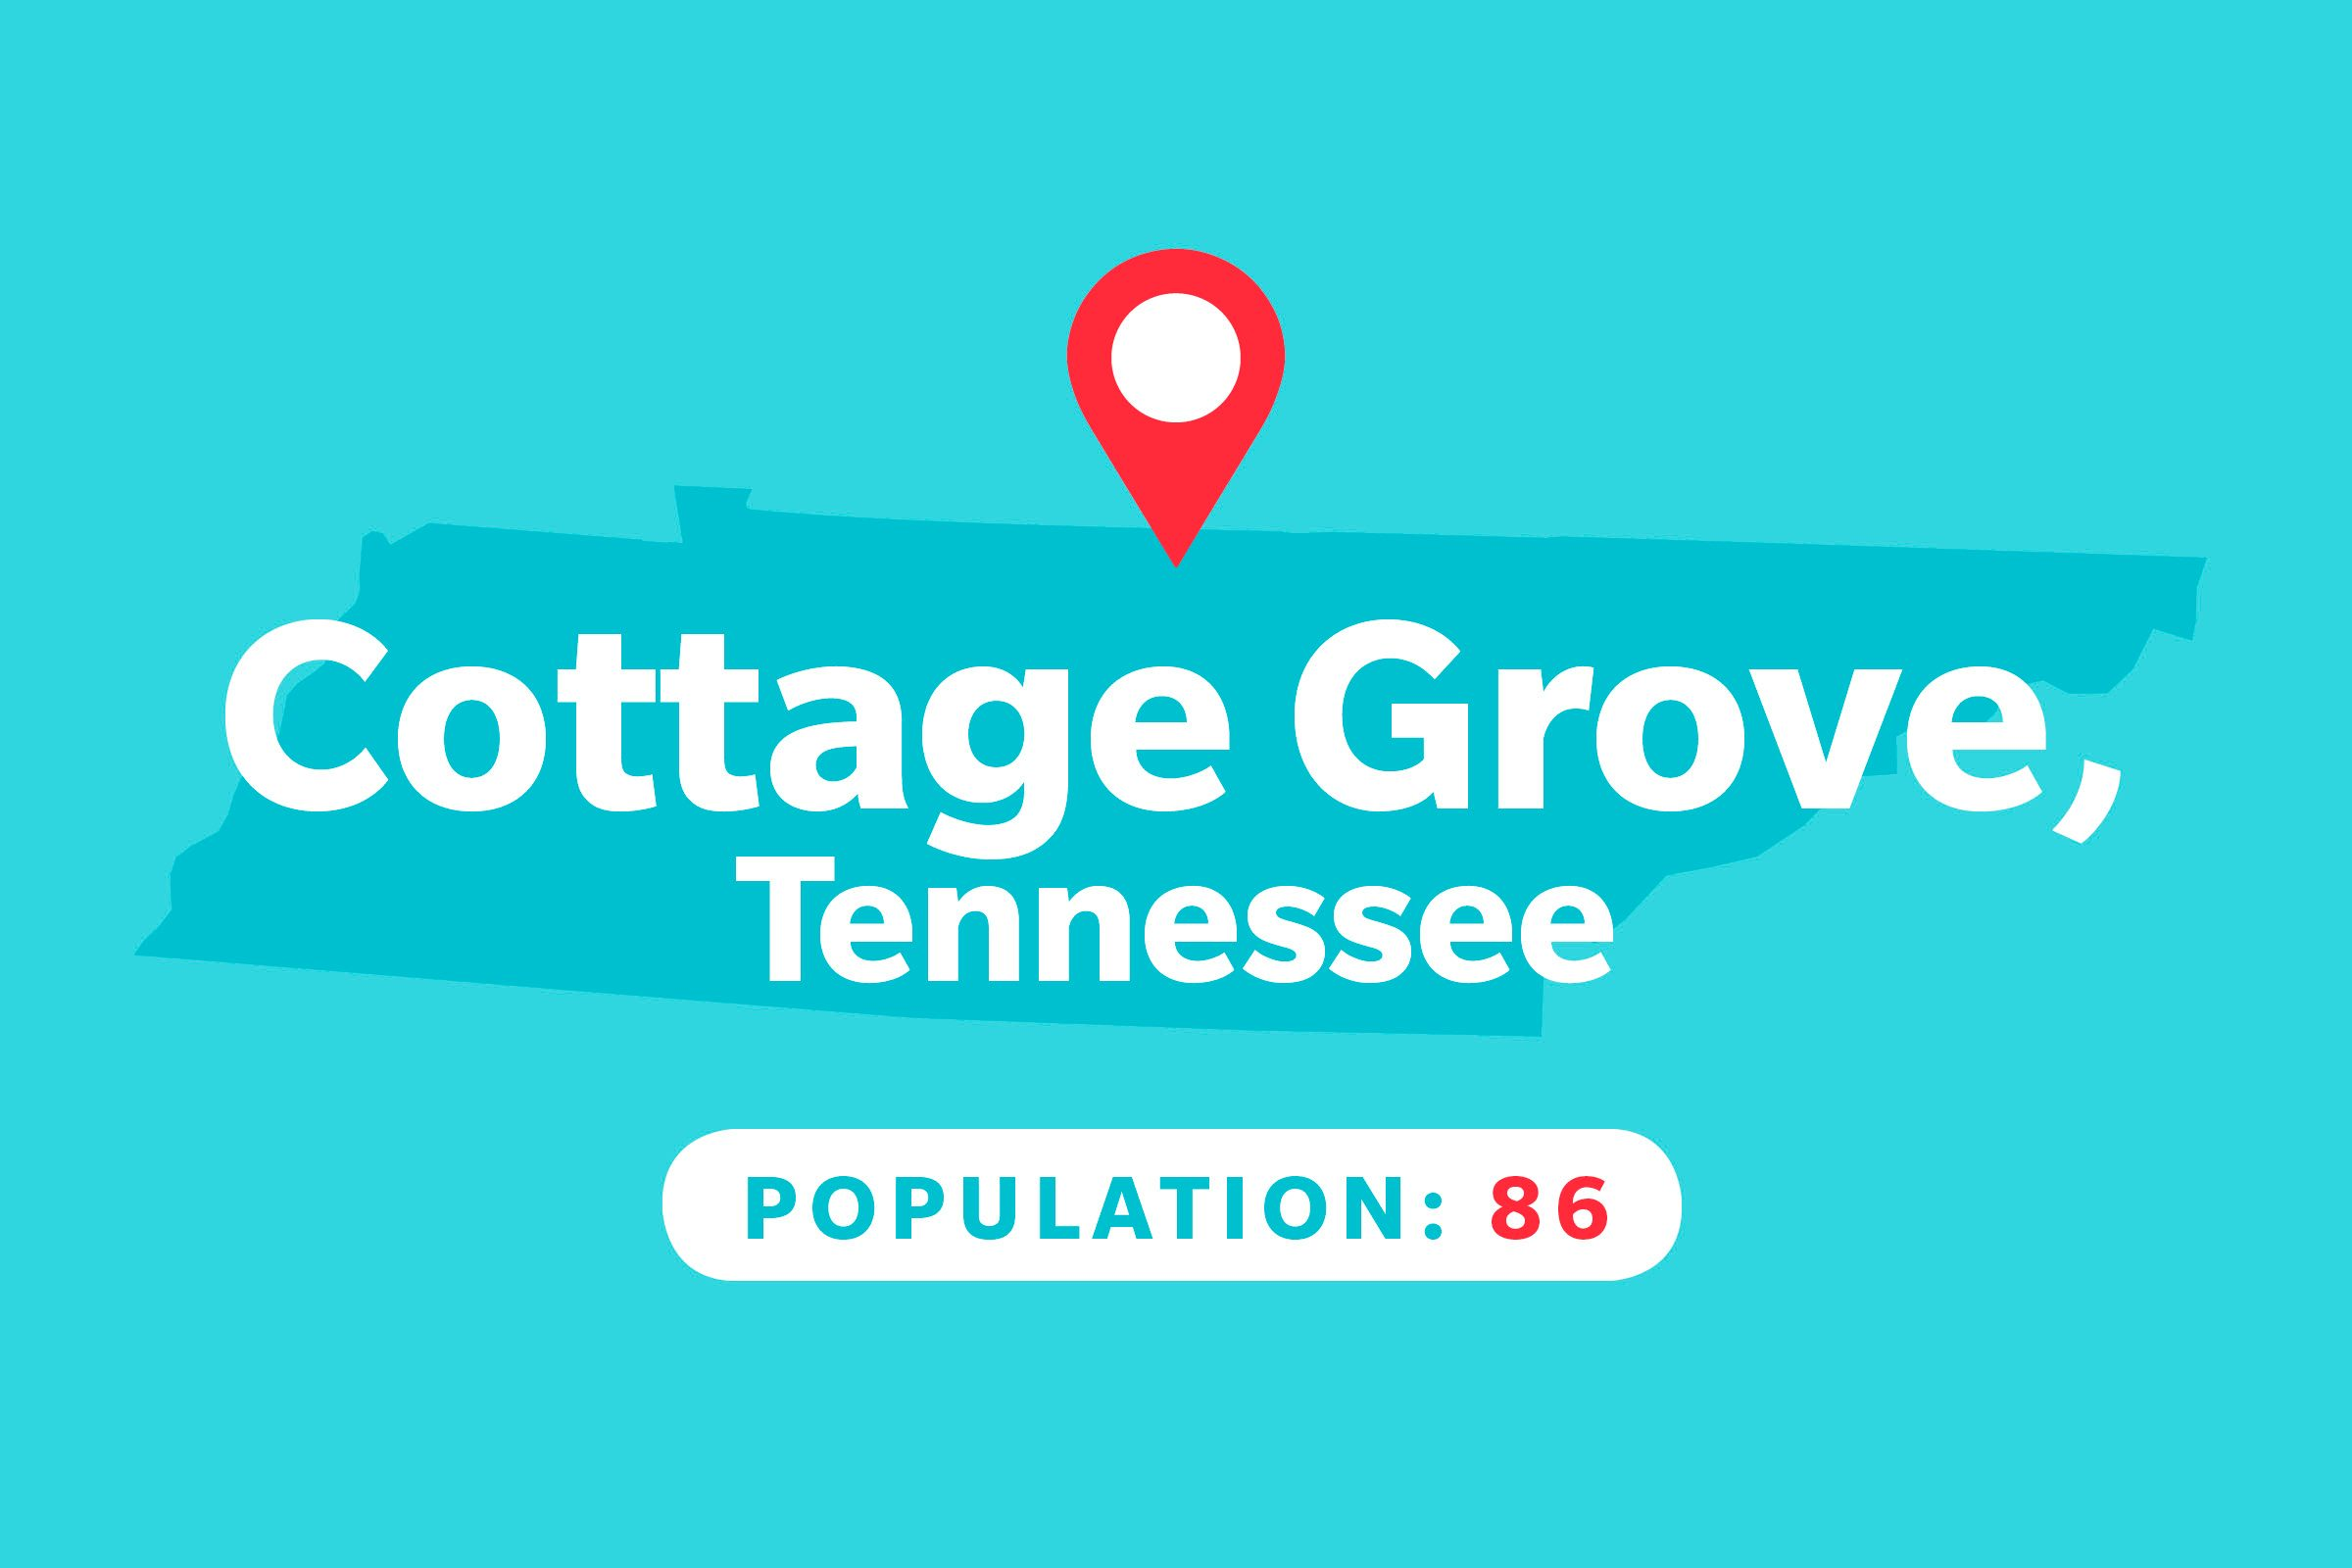 Cottage Grove, Tennessee